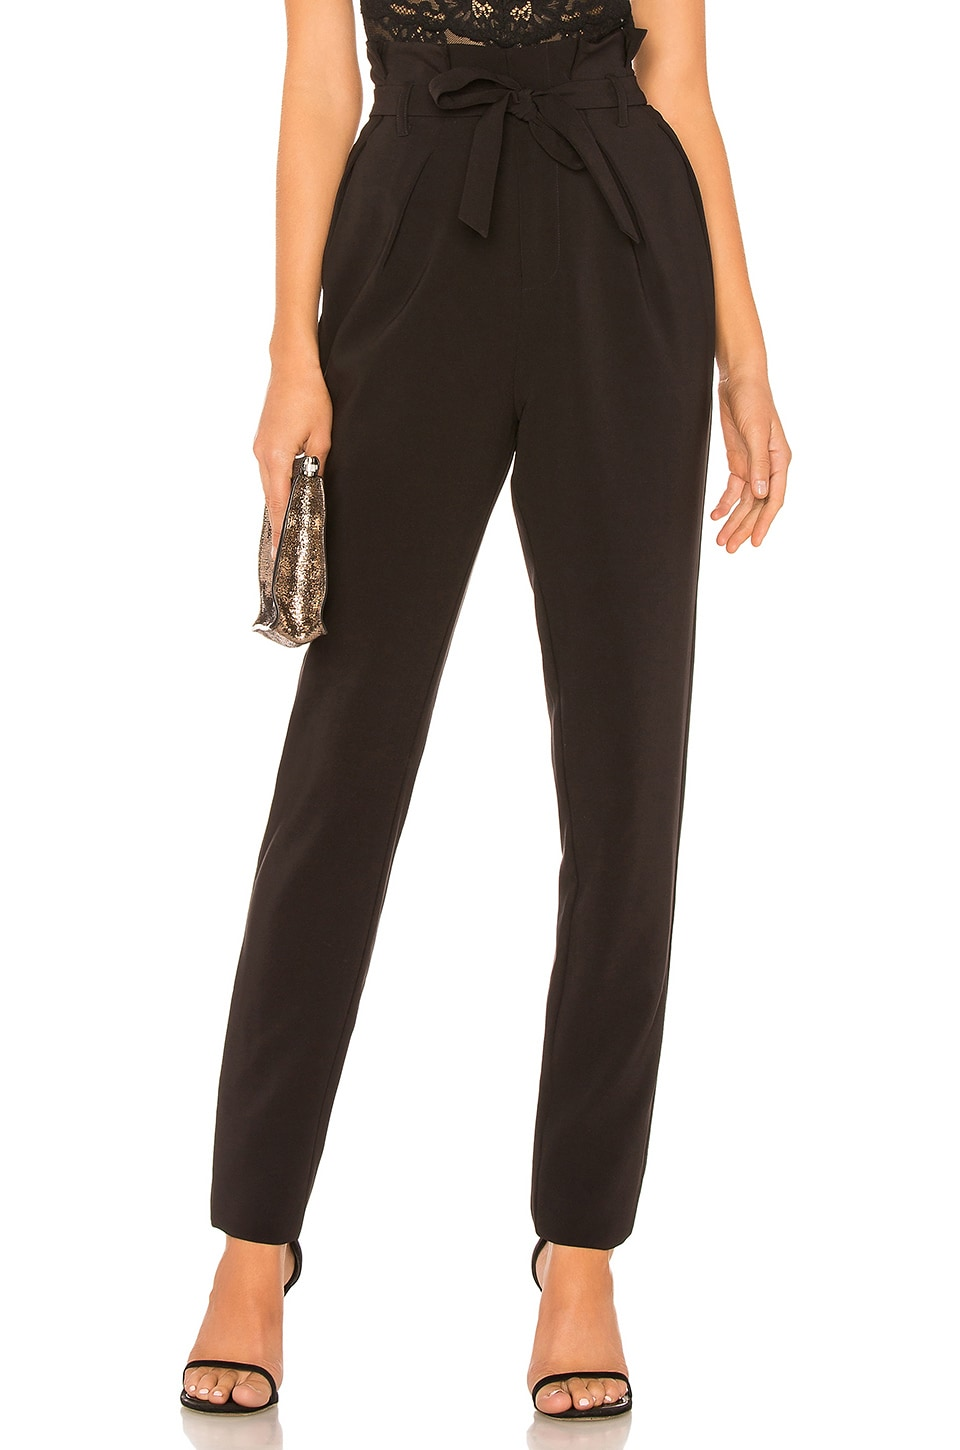 Michael Costello x REVOLVE Perry Pant in Black